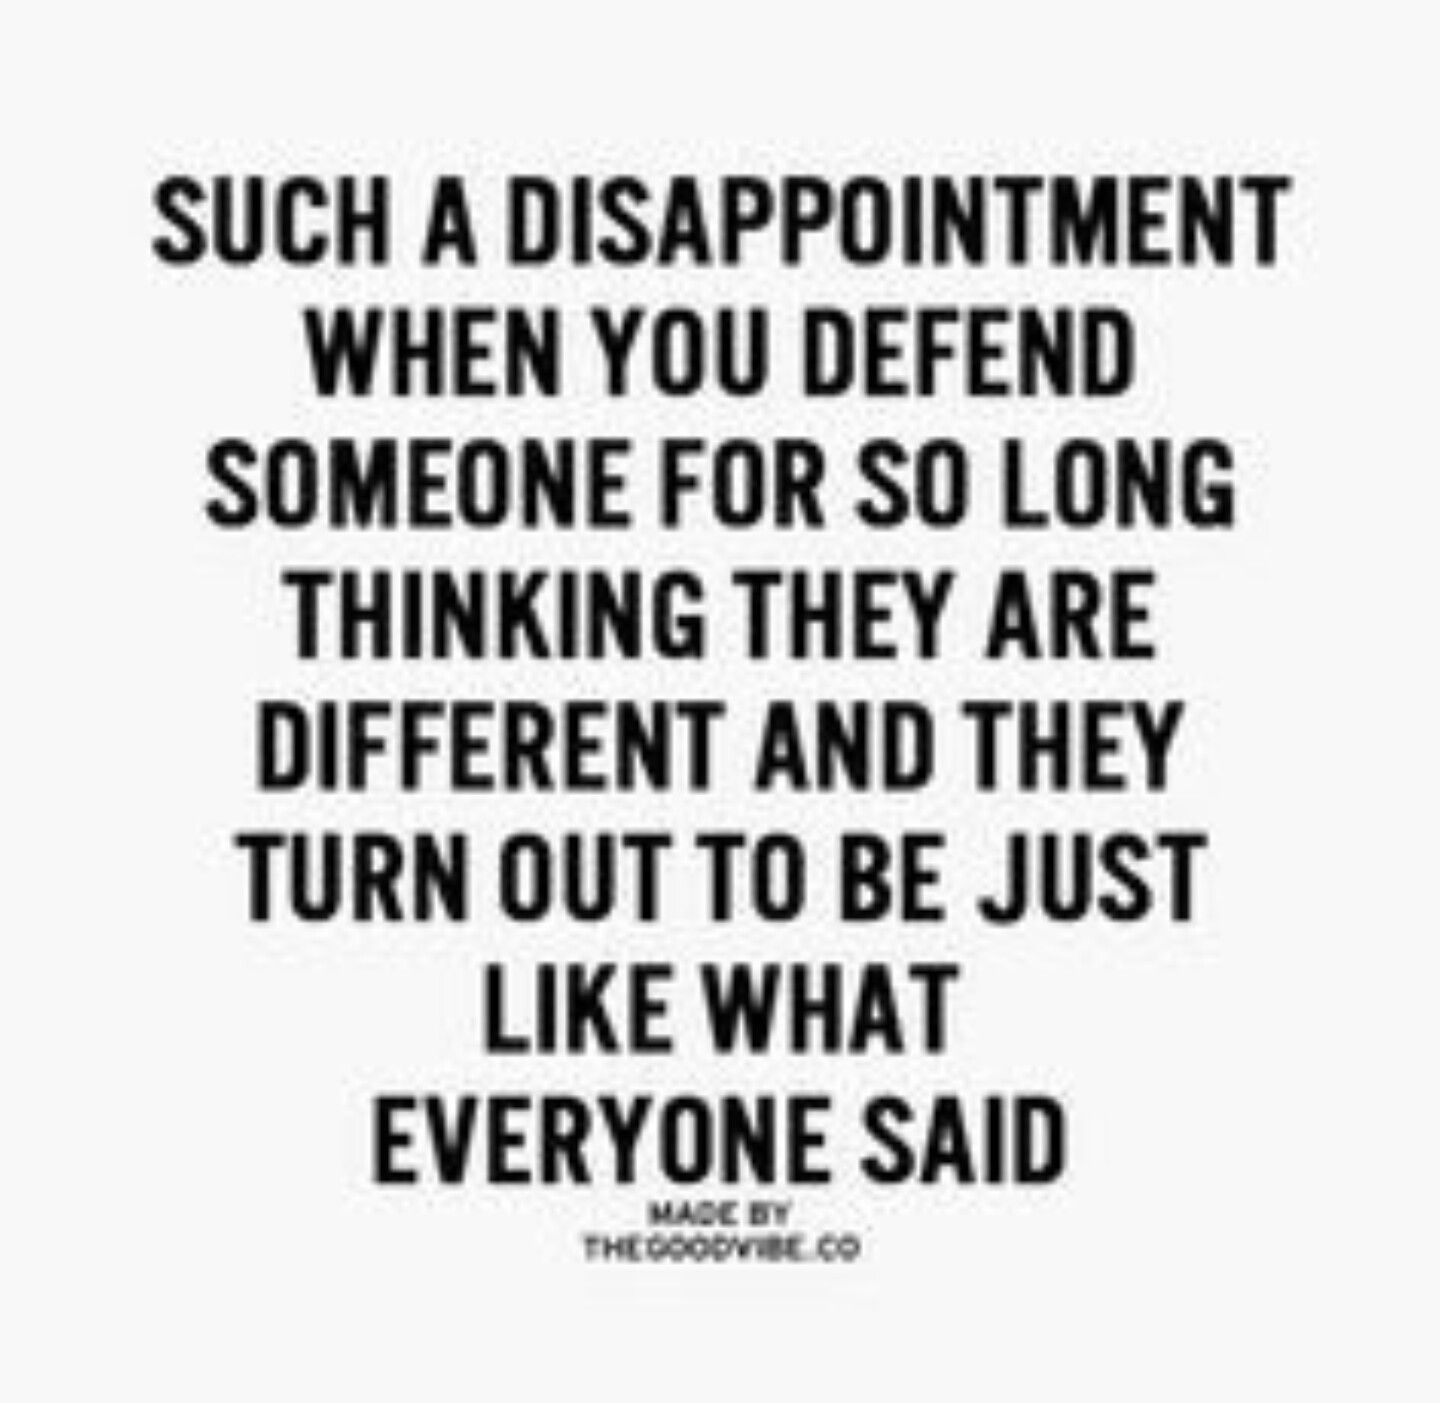 Quotes About Friendship Disappointment Pinjennifer To The Max On Heartbreak  Pinterest